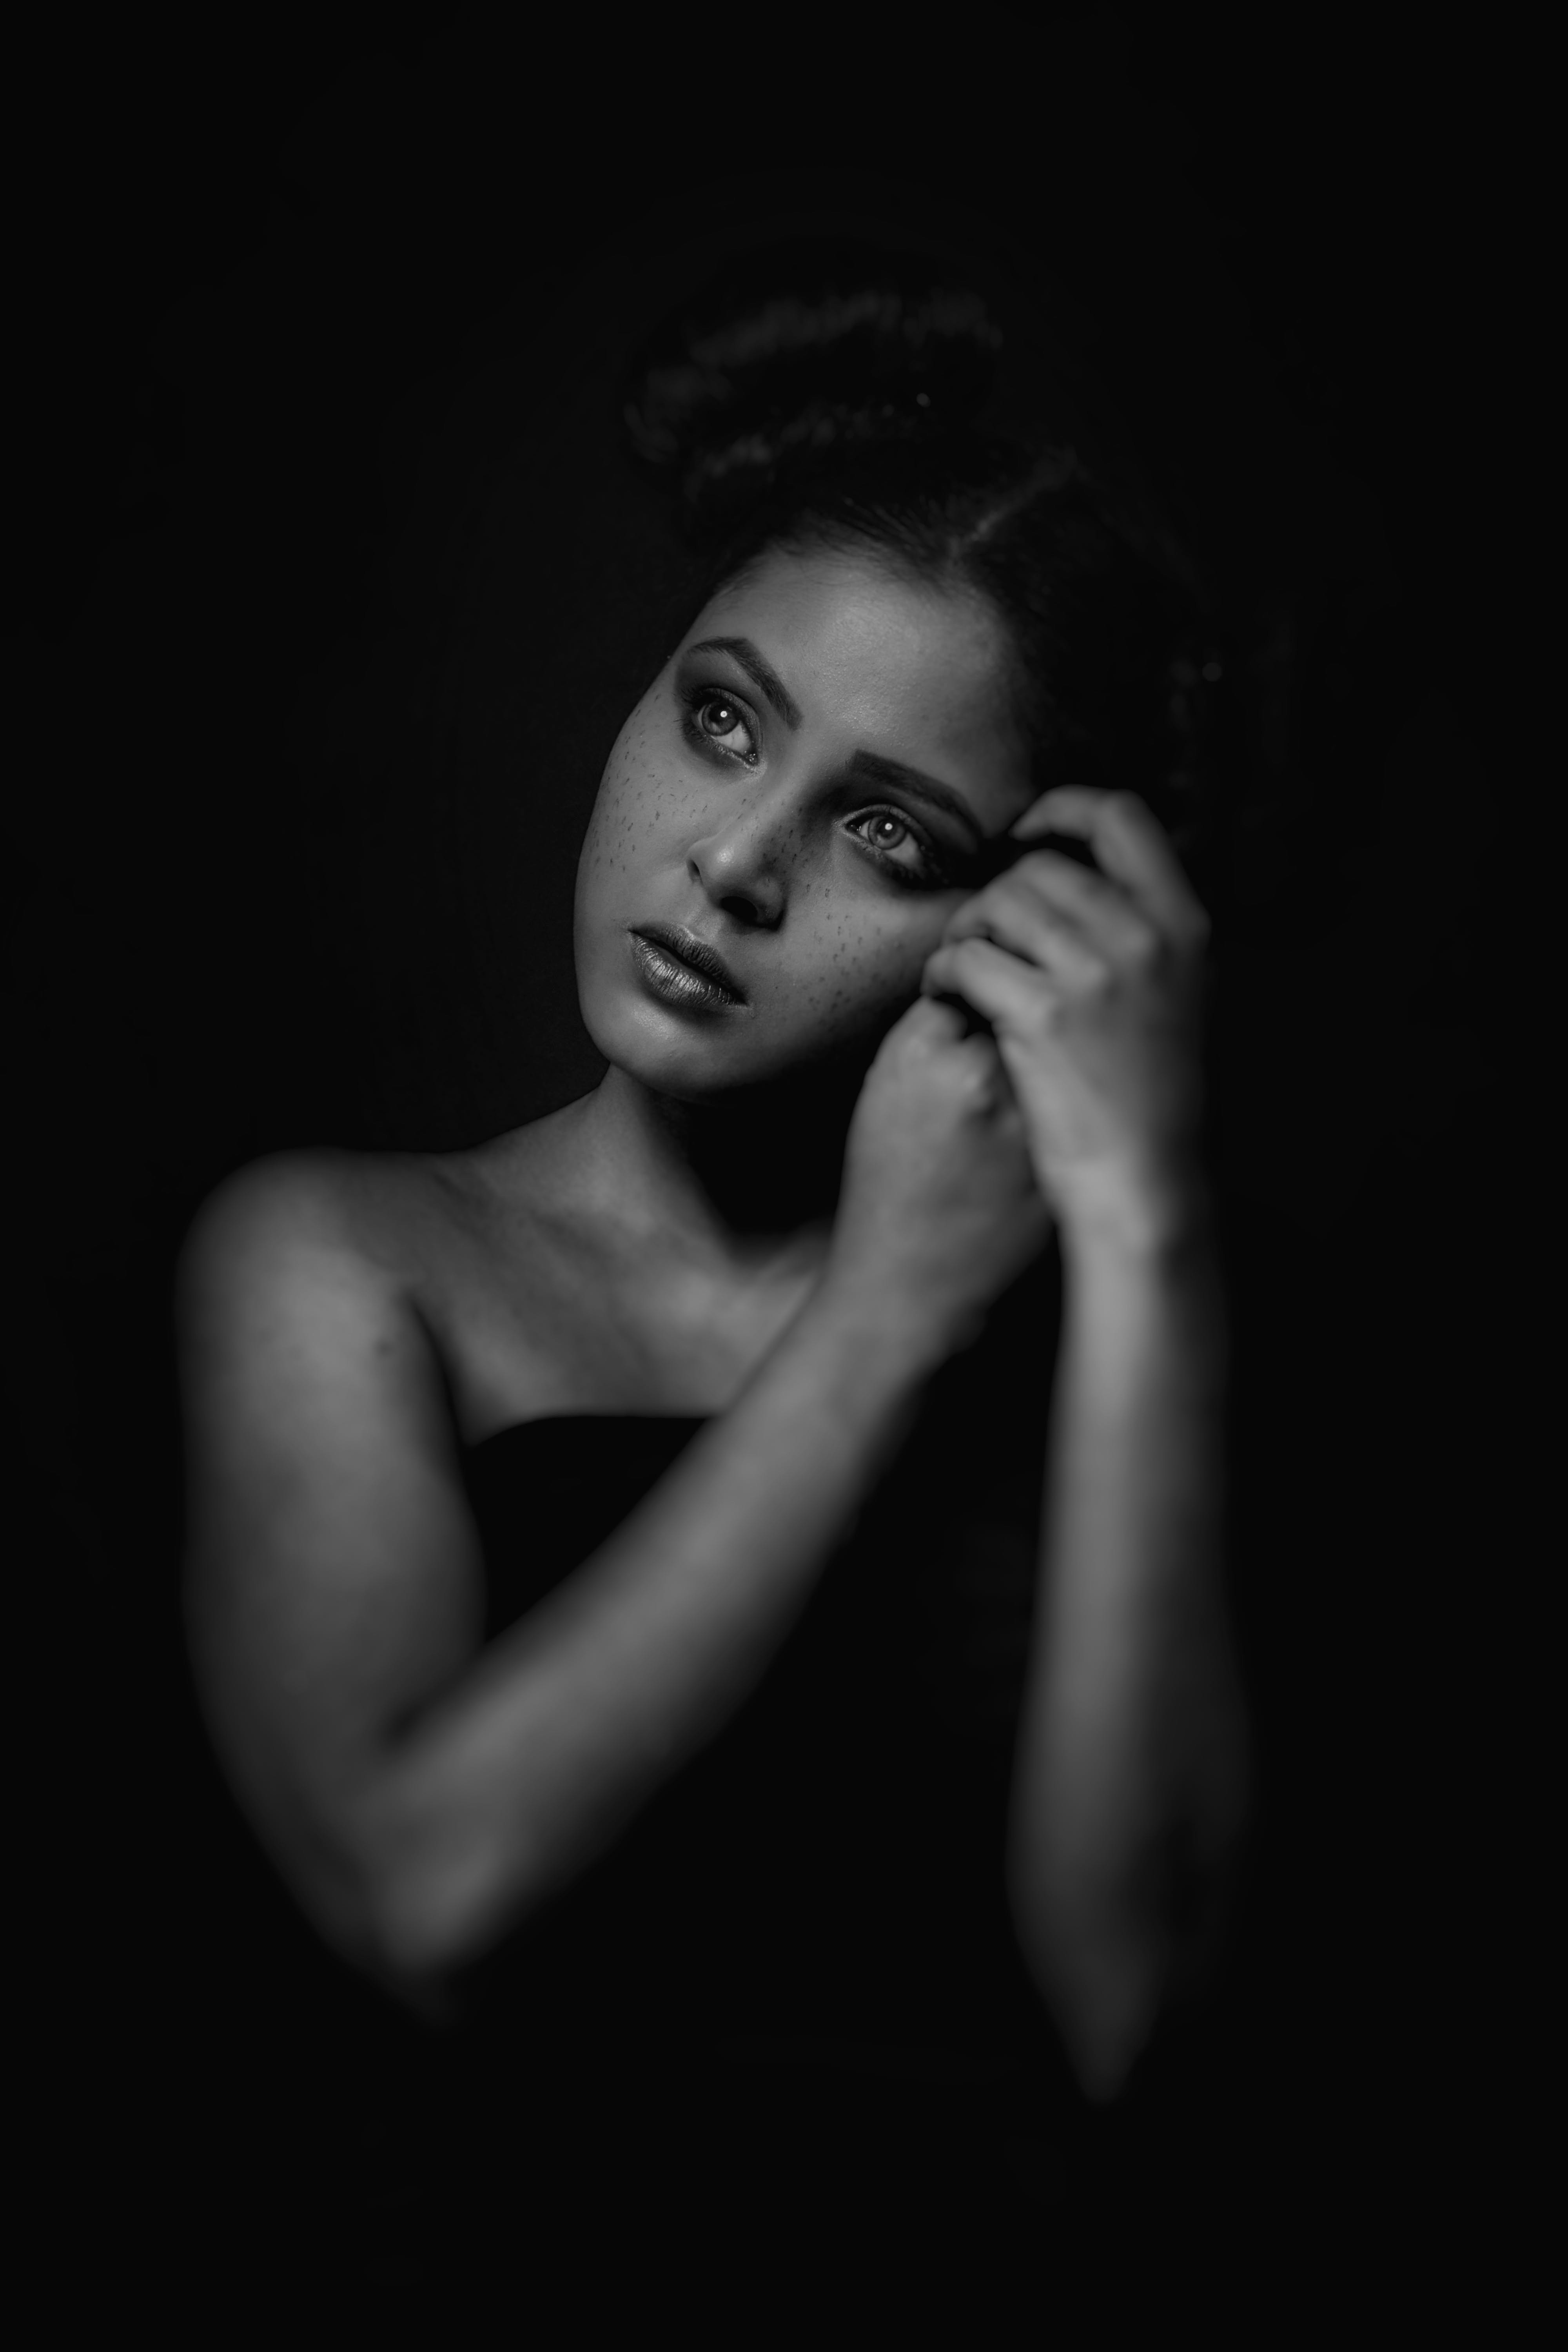 Grayscale Photo of Woman in Dark Room Posing